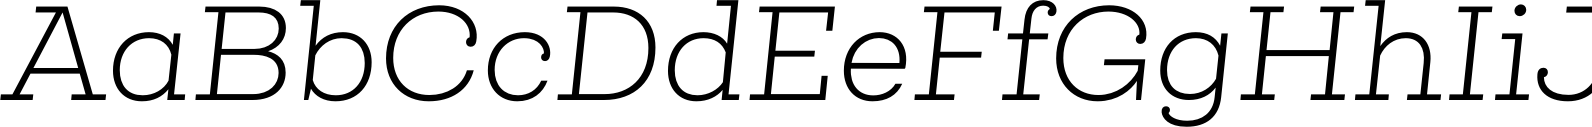 Queulat Light Italic Font